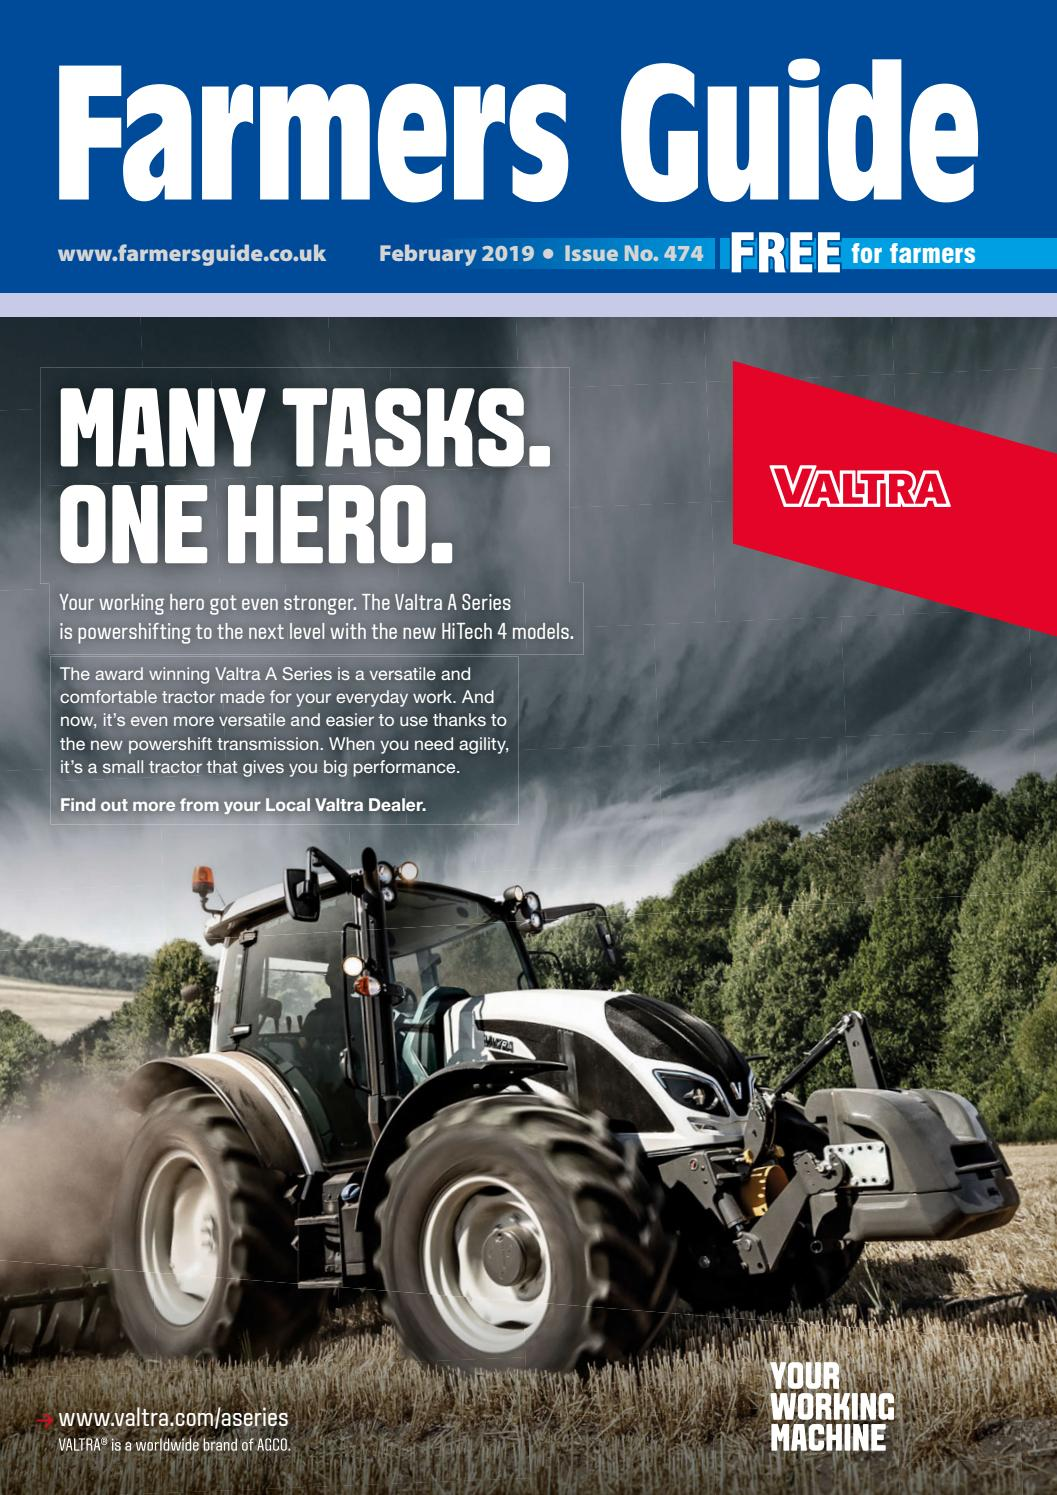 Farmers Guide February 2019 by Farmers Guide - issuu